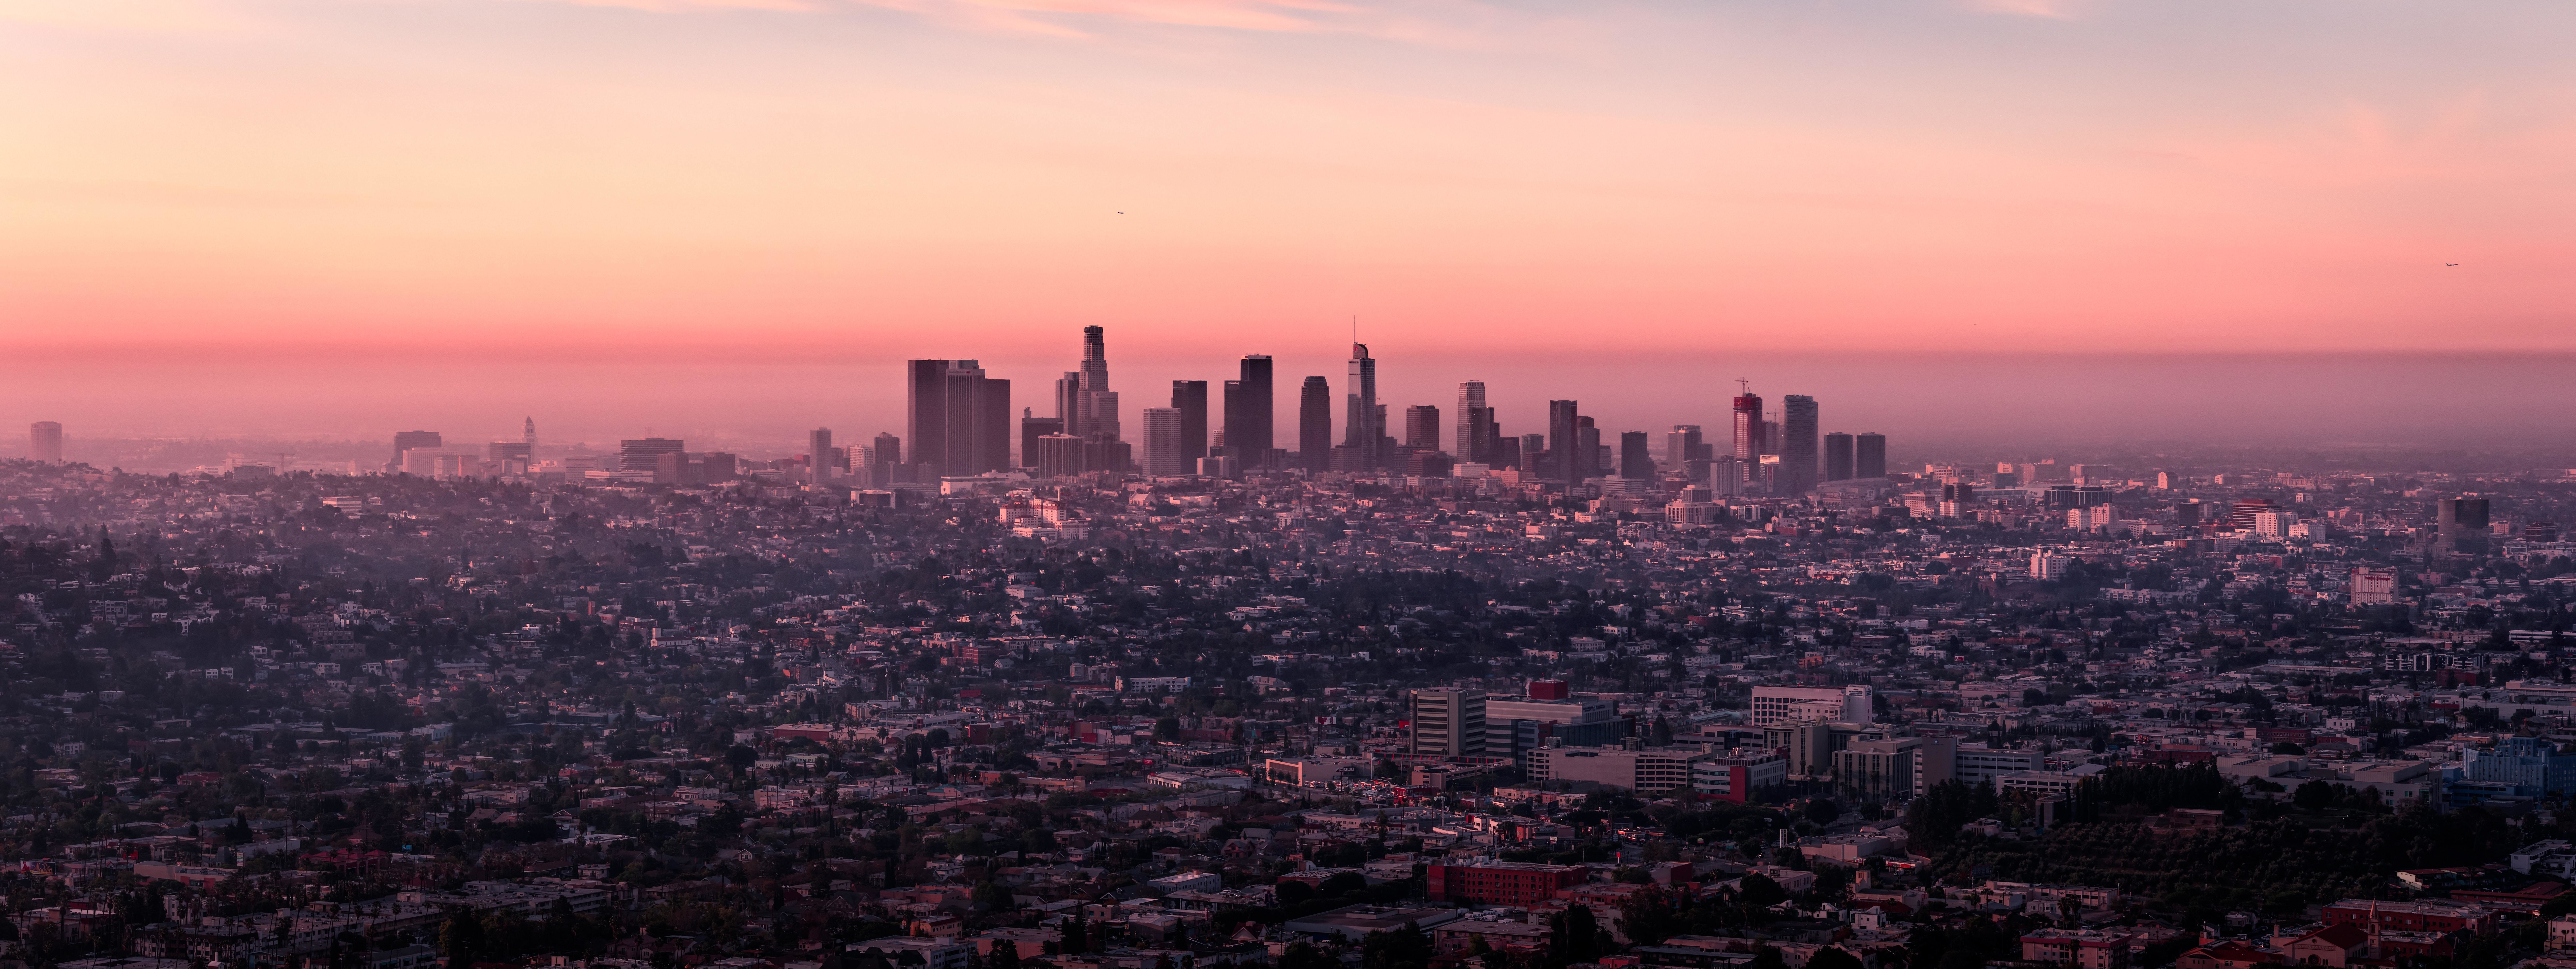 Los Angeles' plan to use 100% renewable energy by 2040 can who other jurisdictions the way forward